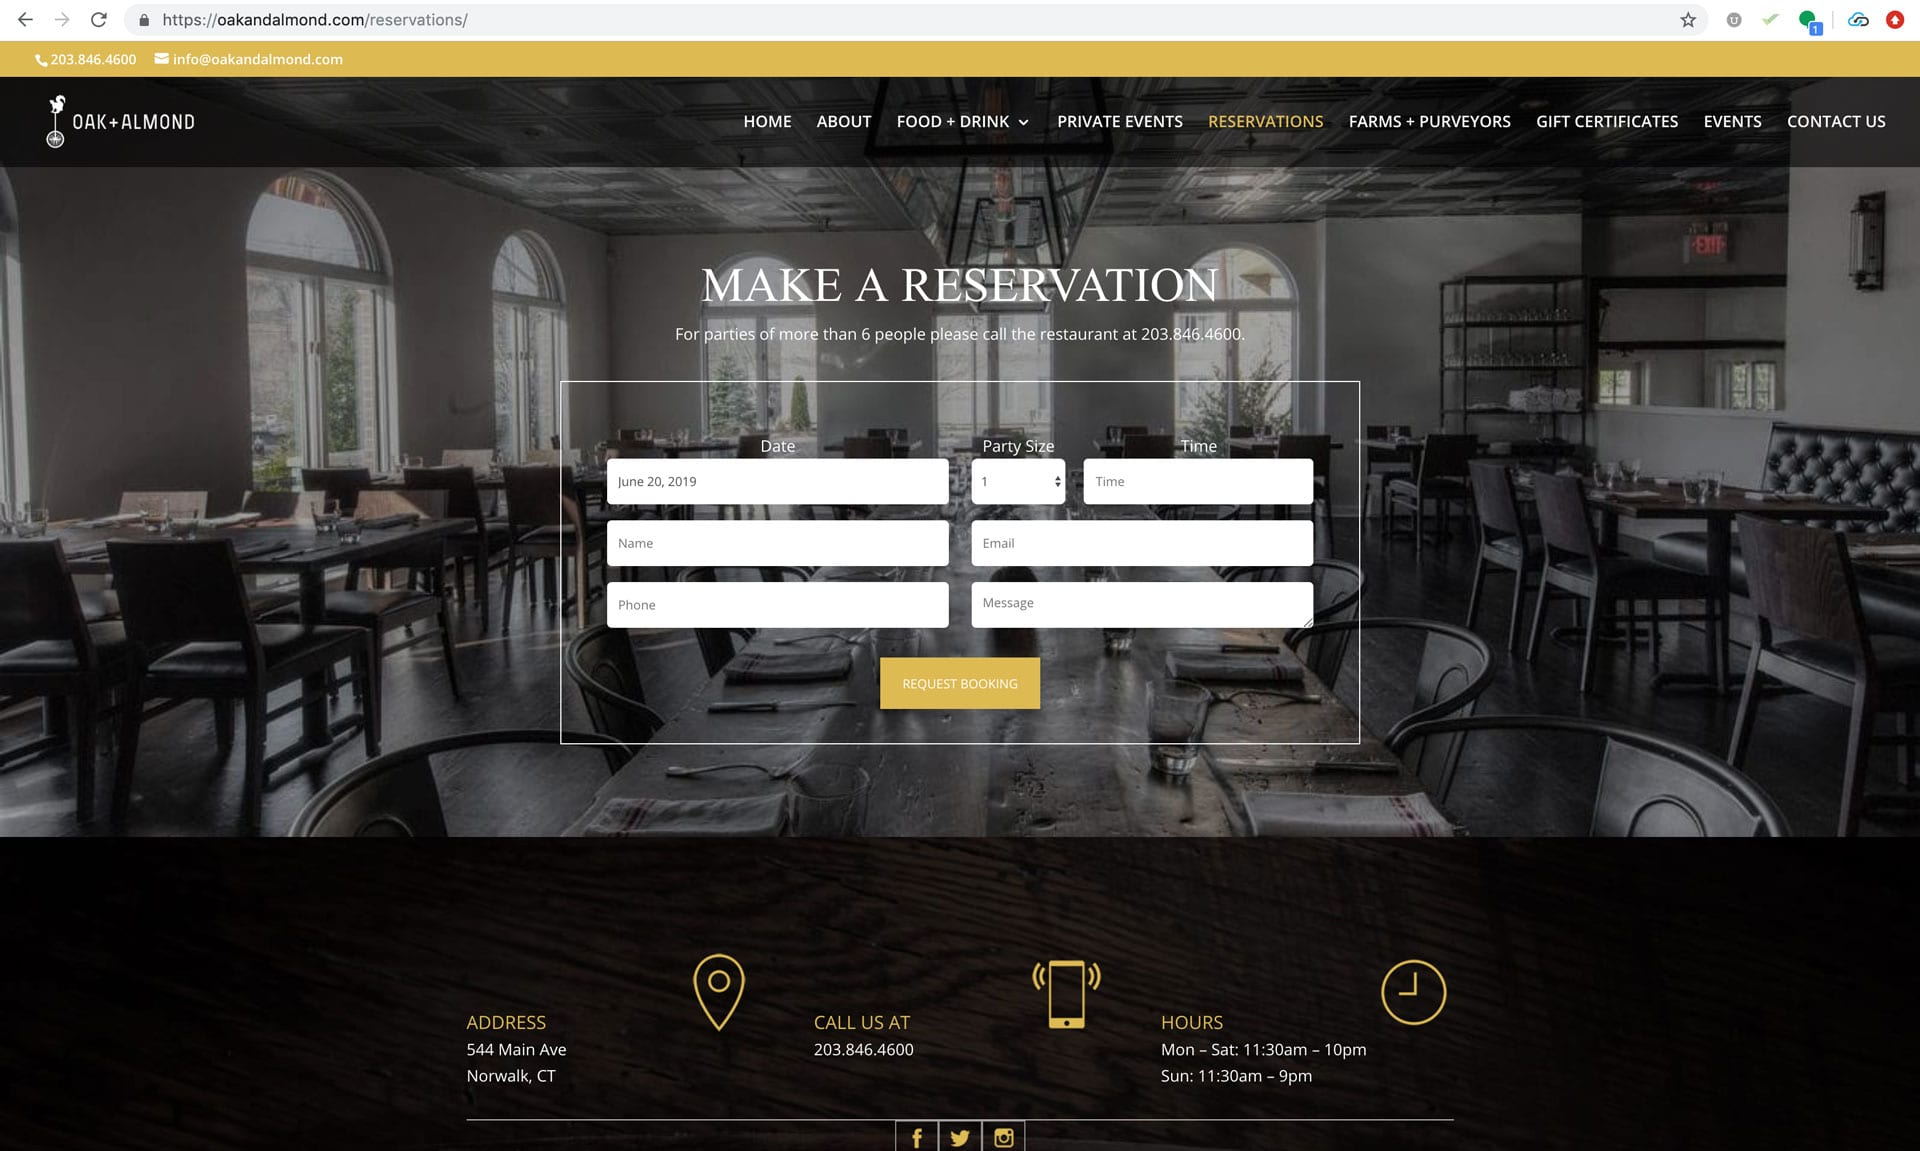 Oak and Almond New Reservation Page - Website Design Wilton, CT Aspire Digital Solutions